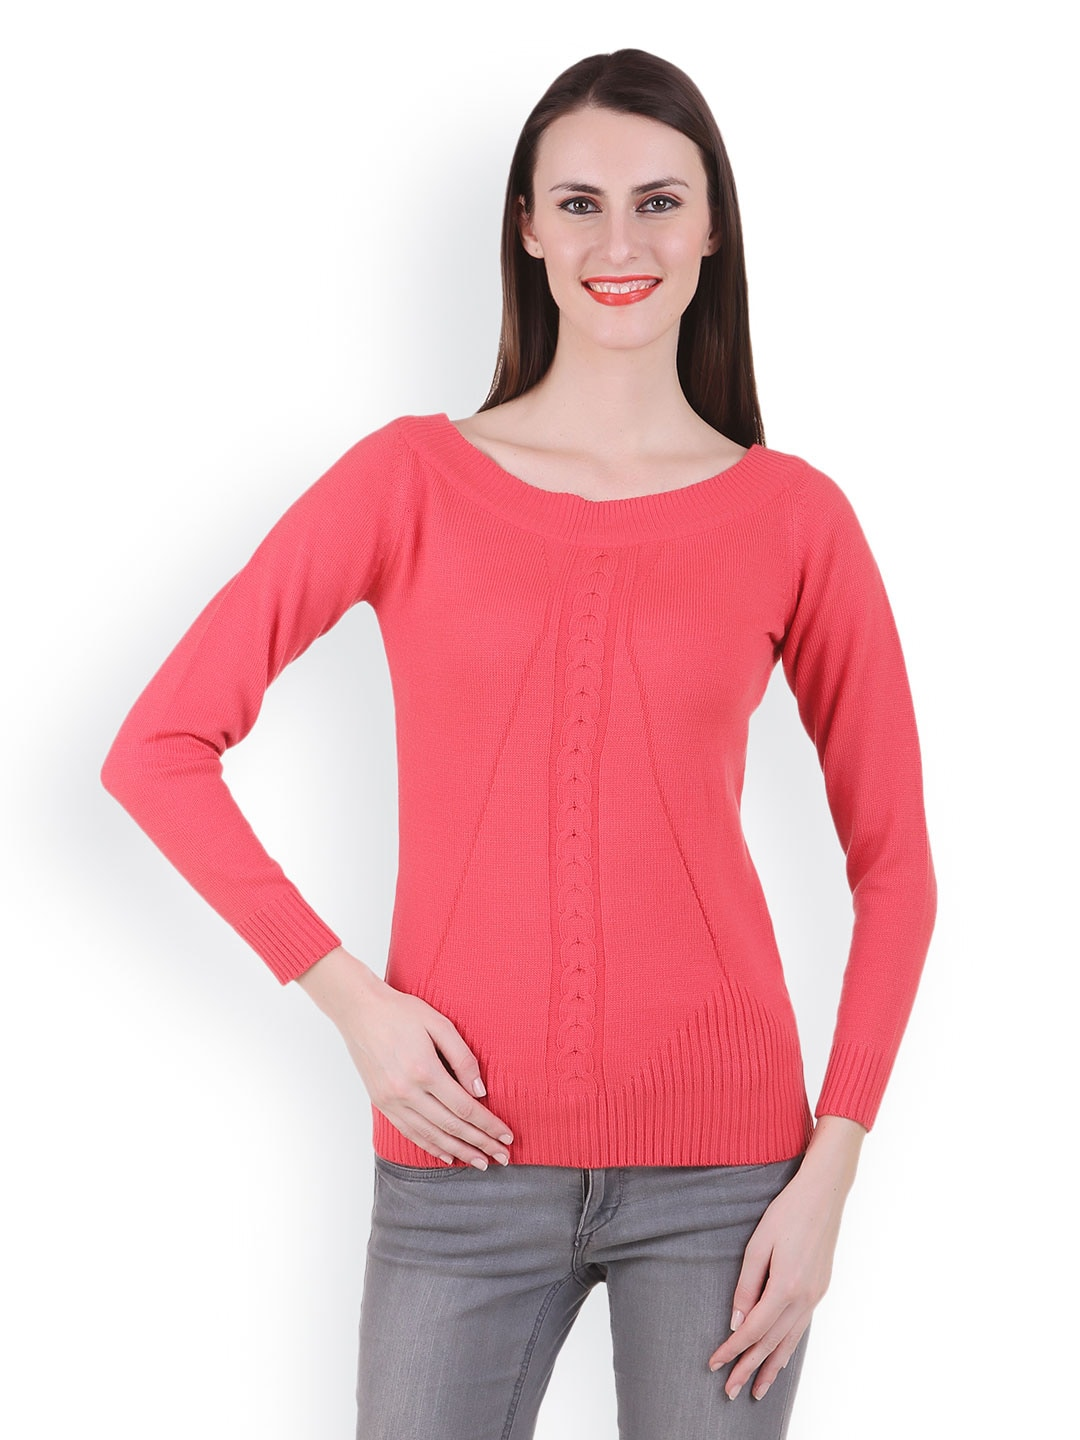 Juelle Juelle Women Coral Pink Sweater (Multicolor)